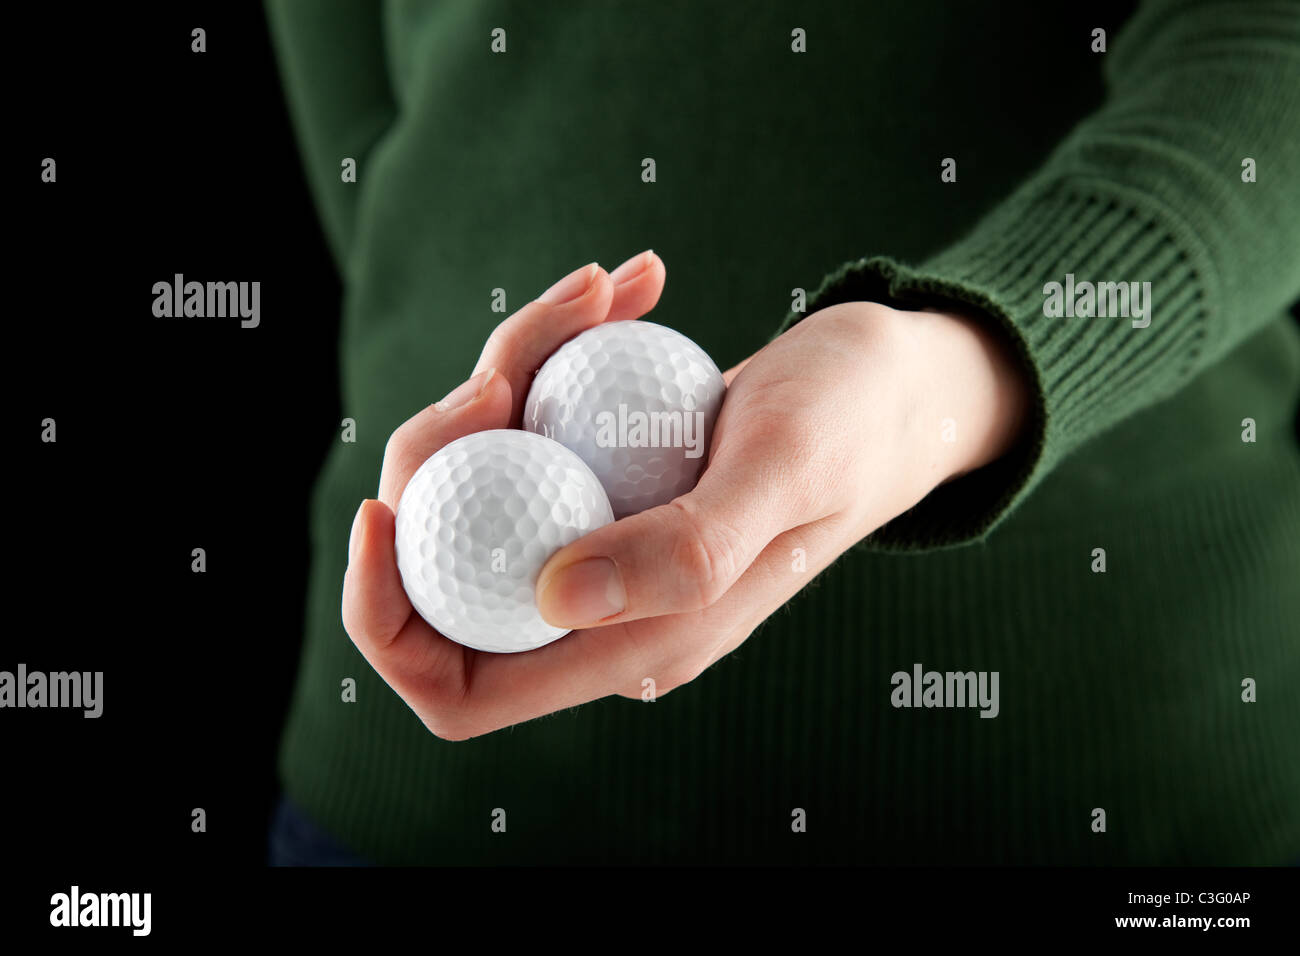 close up shot of a female hand holding two golf balls - Stock Image